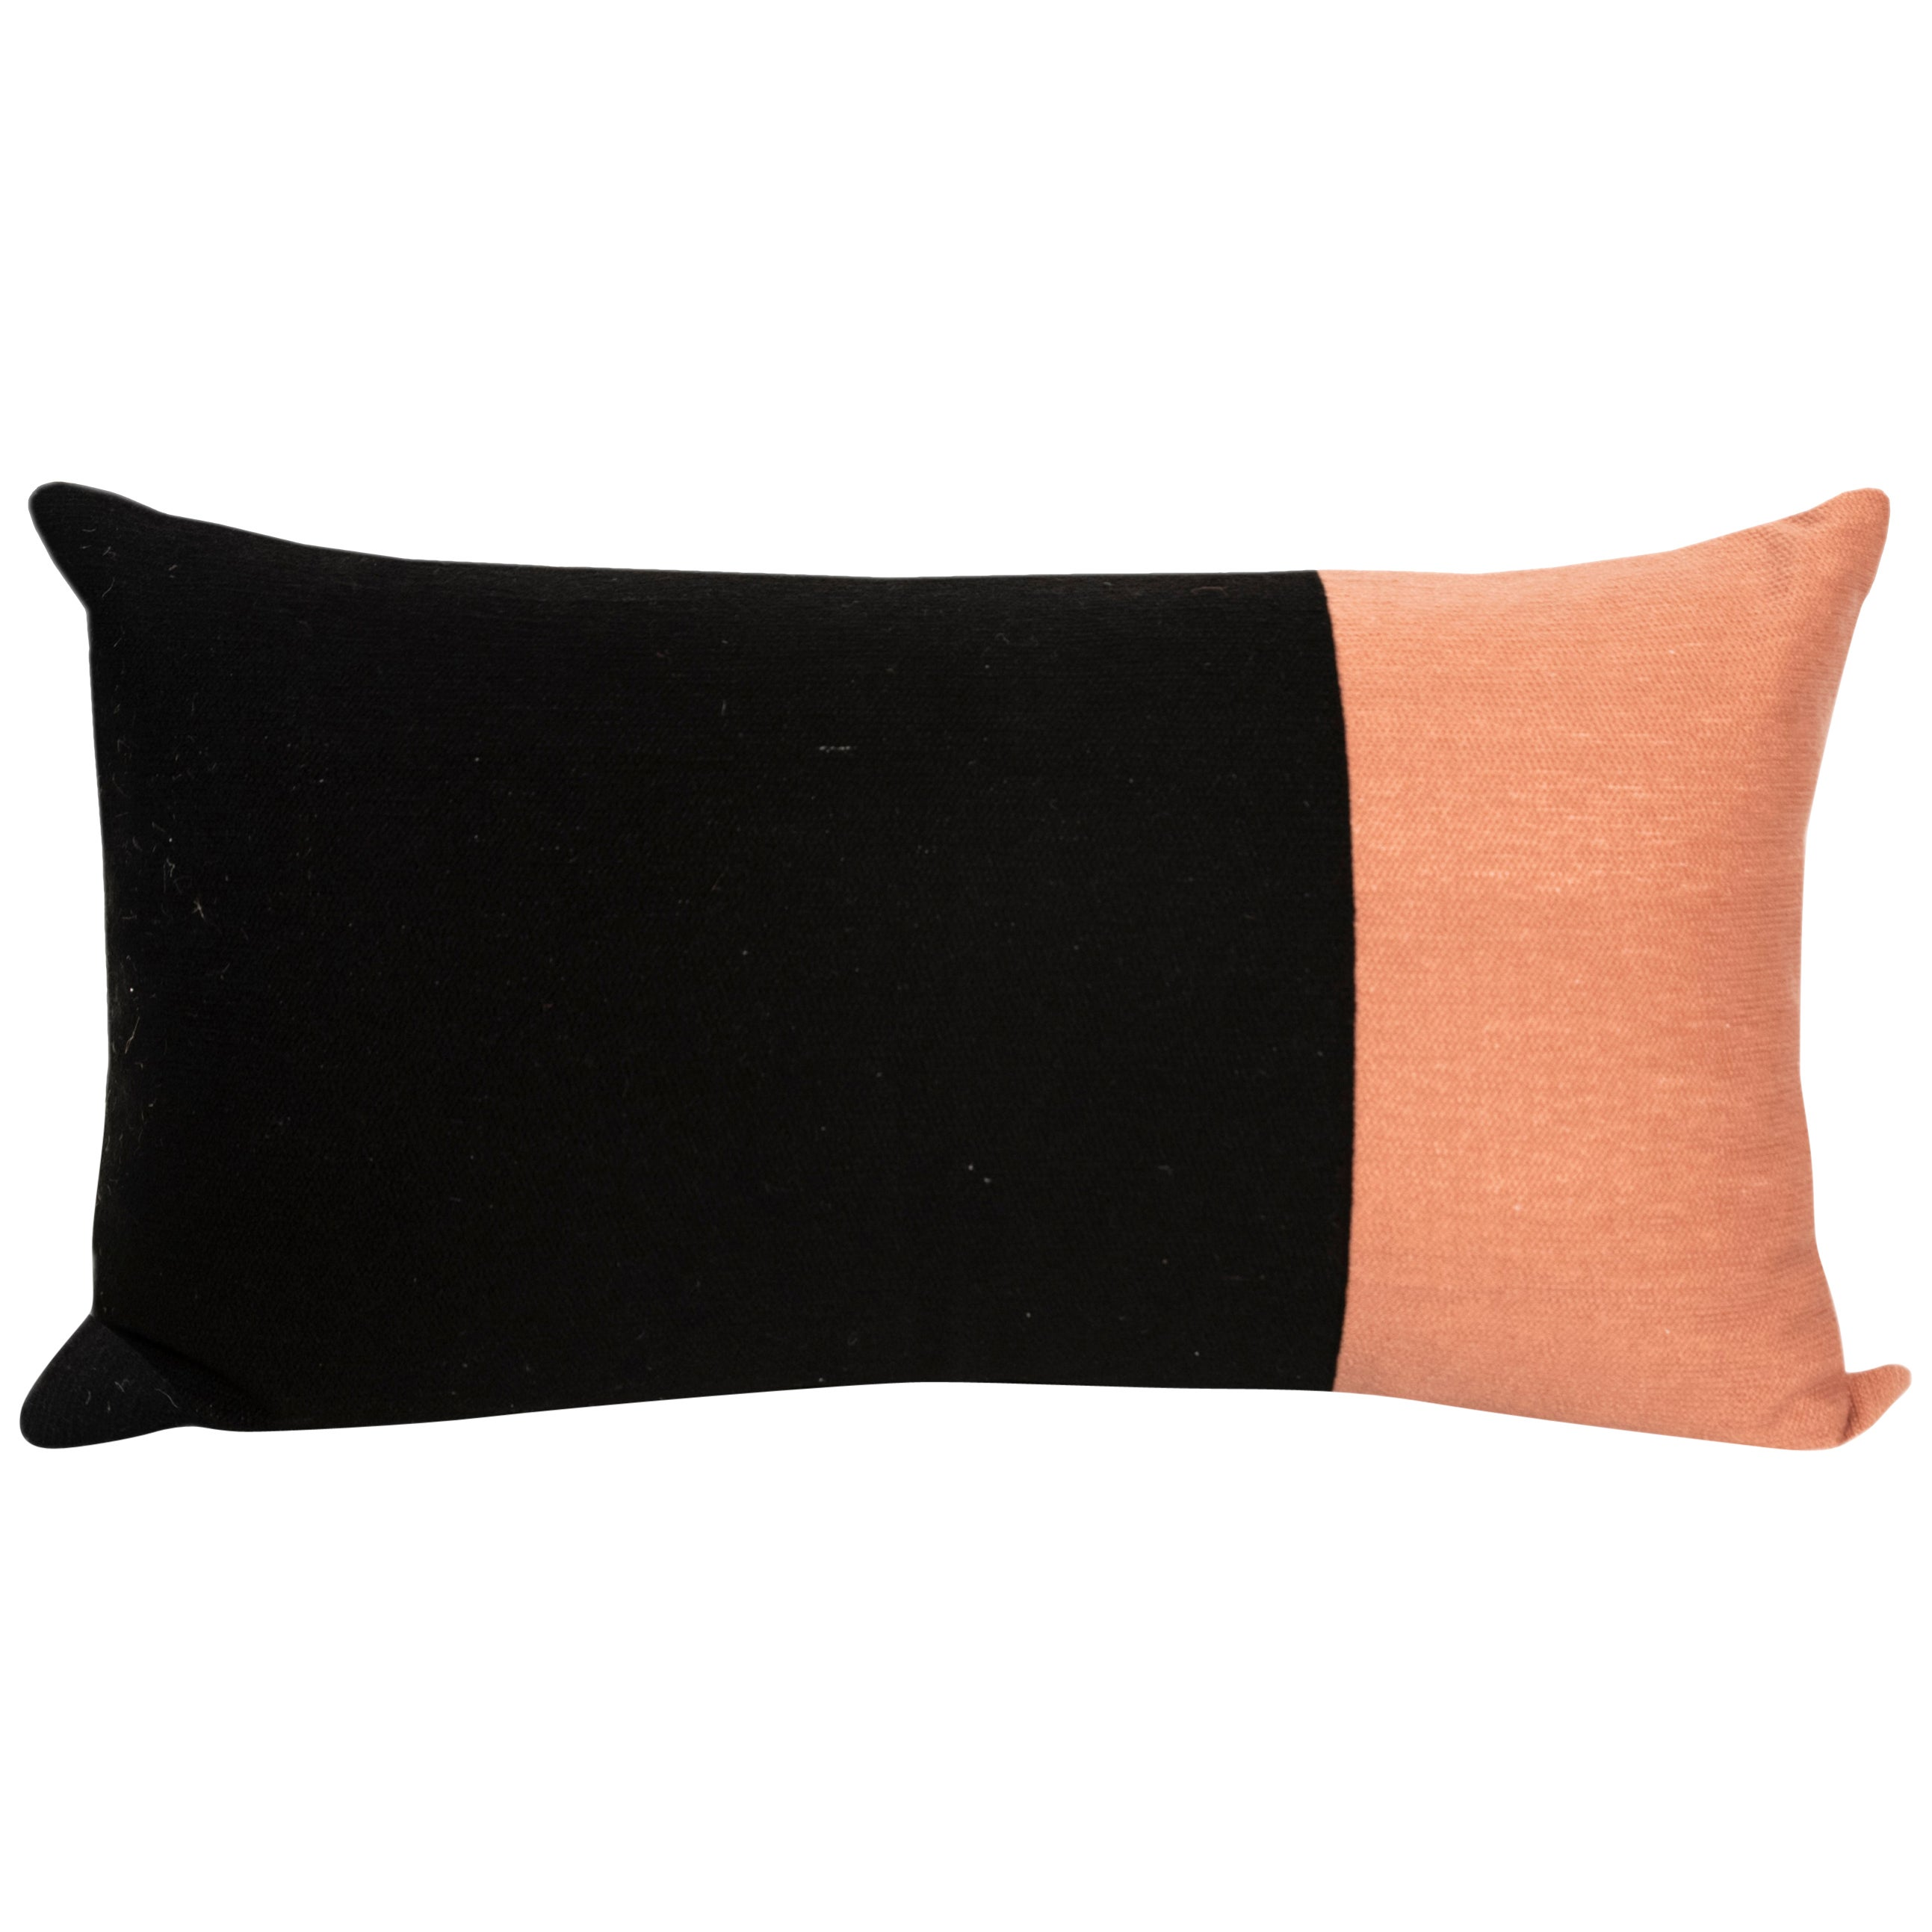 Modern Kilombo Home Embroidery Pillow Cotton Geometric Black and Salmon